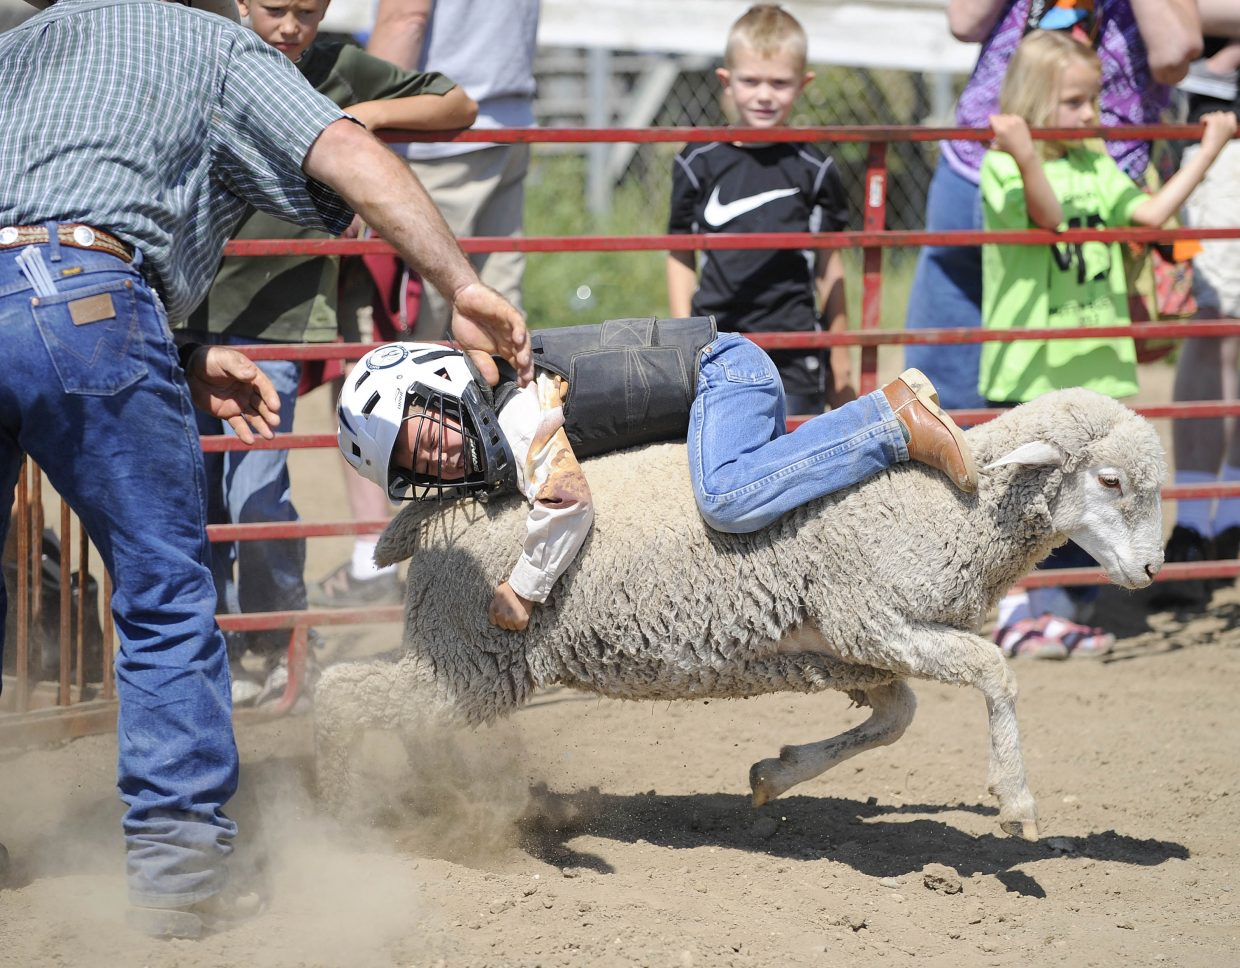 Joseph Planansky, 6, of Hayden, competes in the mutton bustin' competition Saturday at the Routt County Fair.